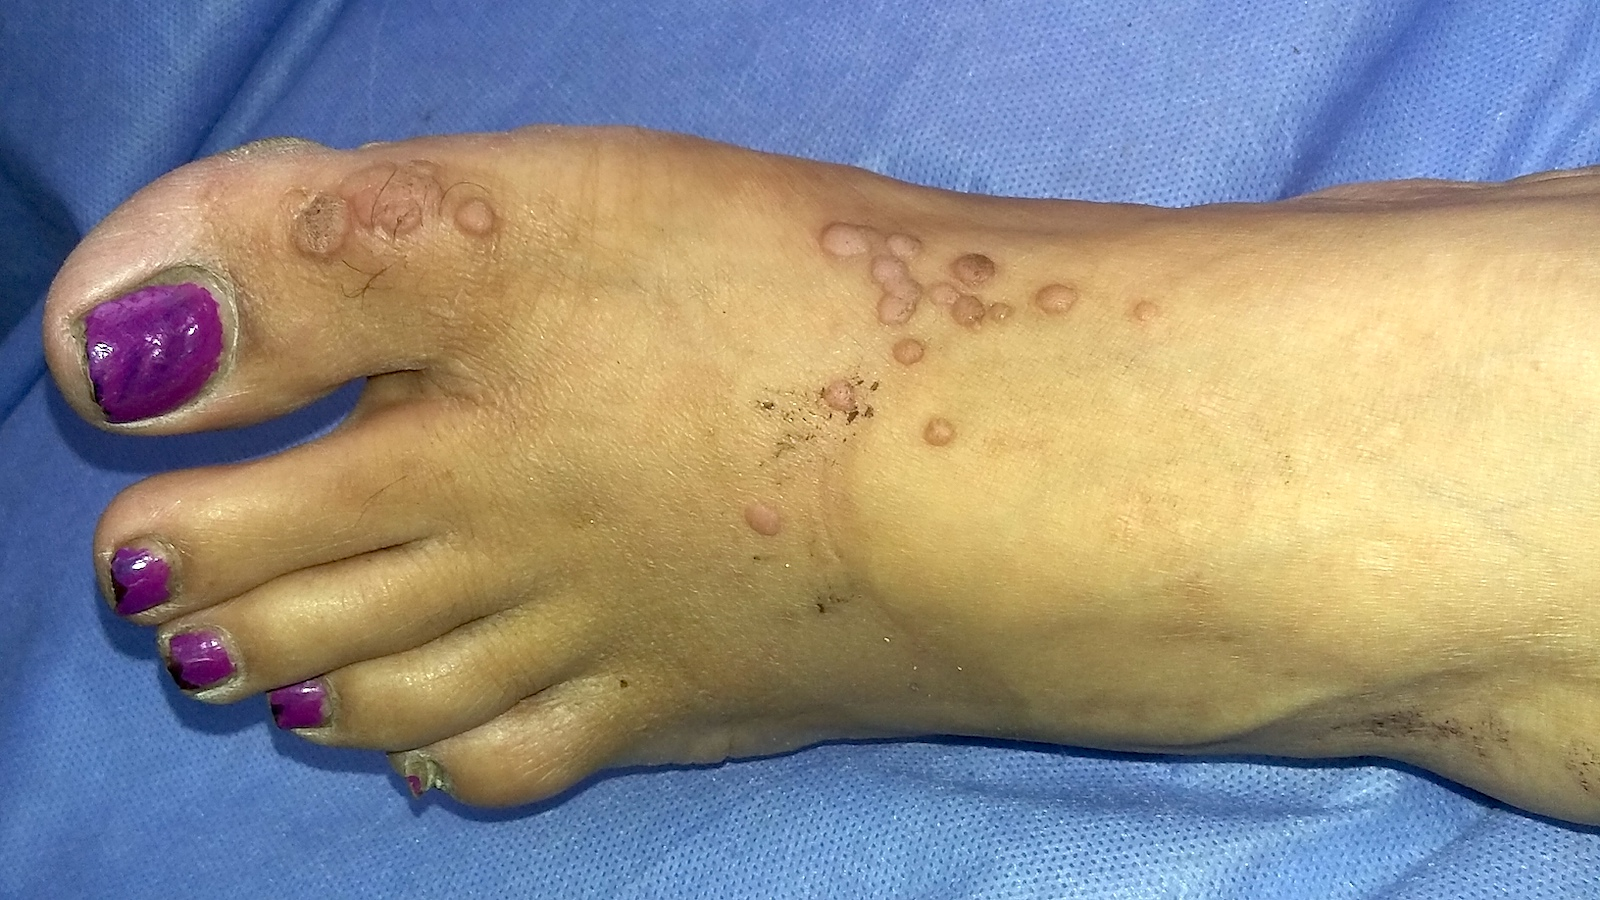 wart on right foot icd 10)